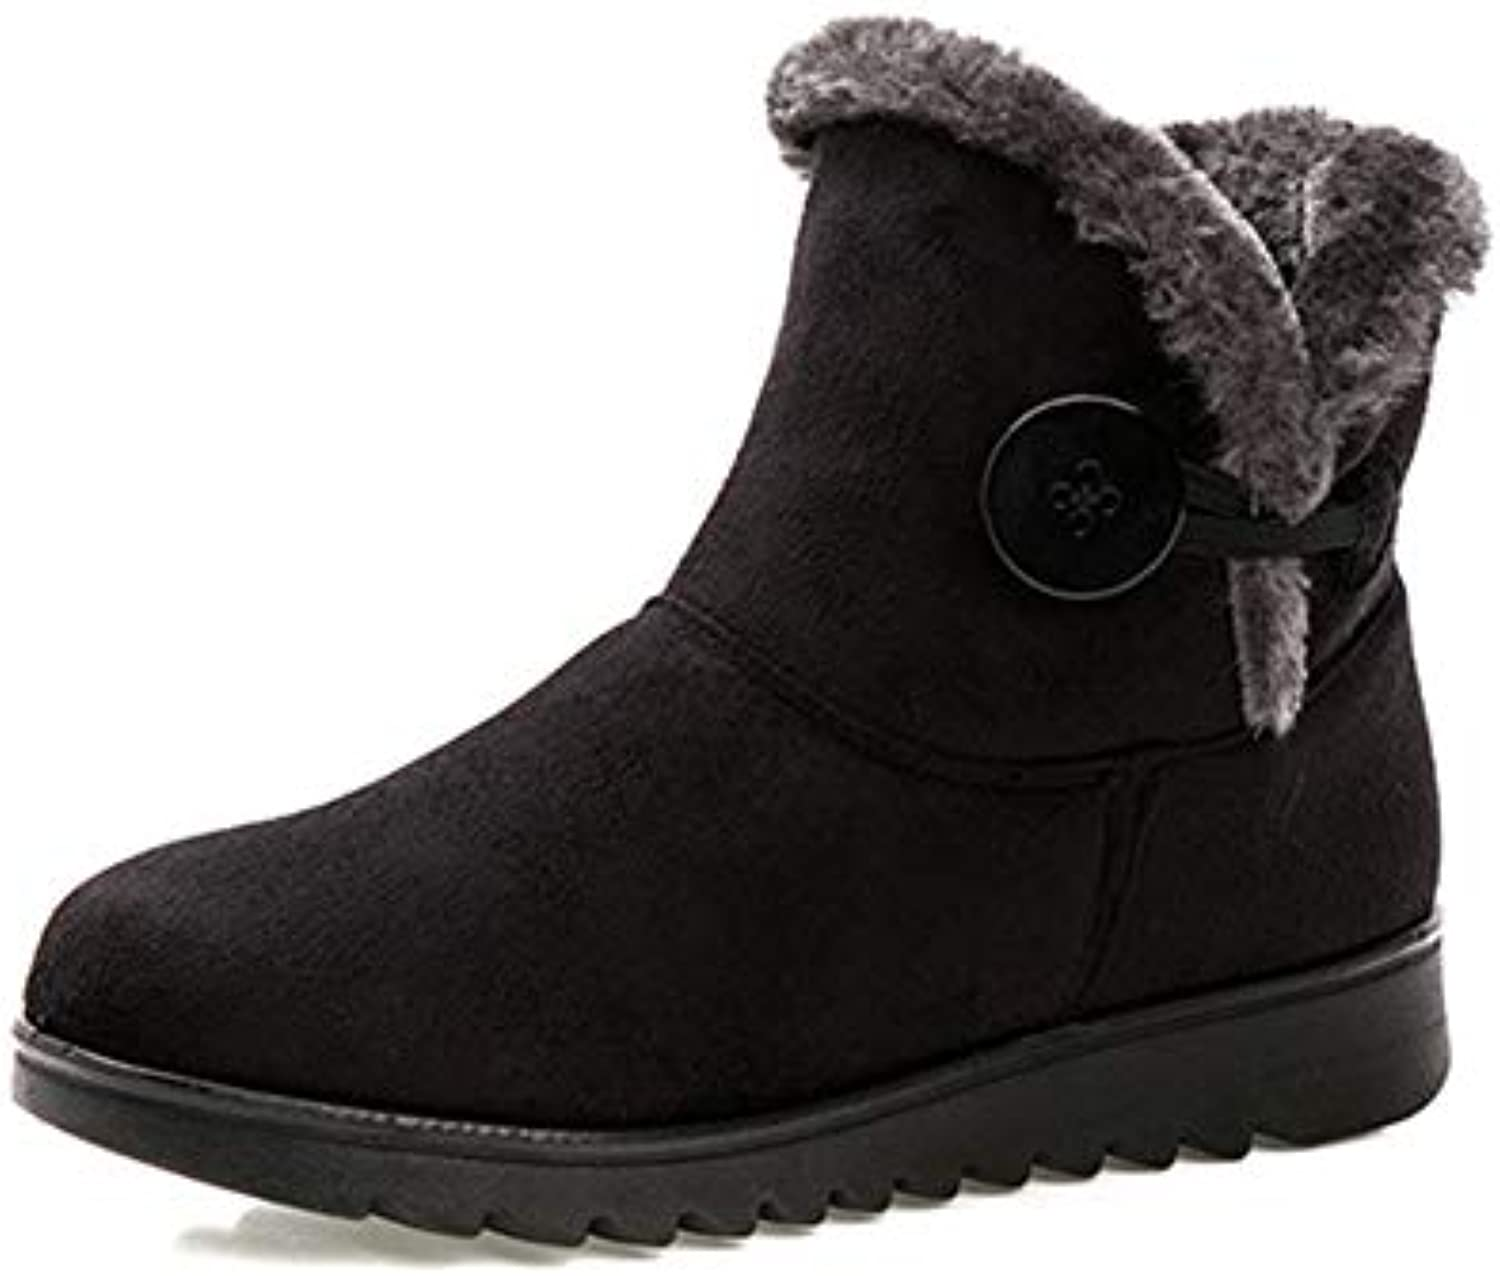 T-JULY Warm Fur Women Flat Platform Winter Flock Snow Ankle Boots Female Fashion Non-Slip Basic Snow Casual shoes